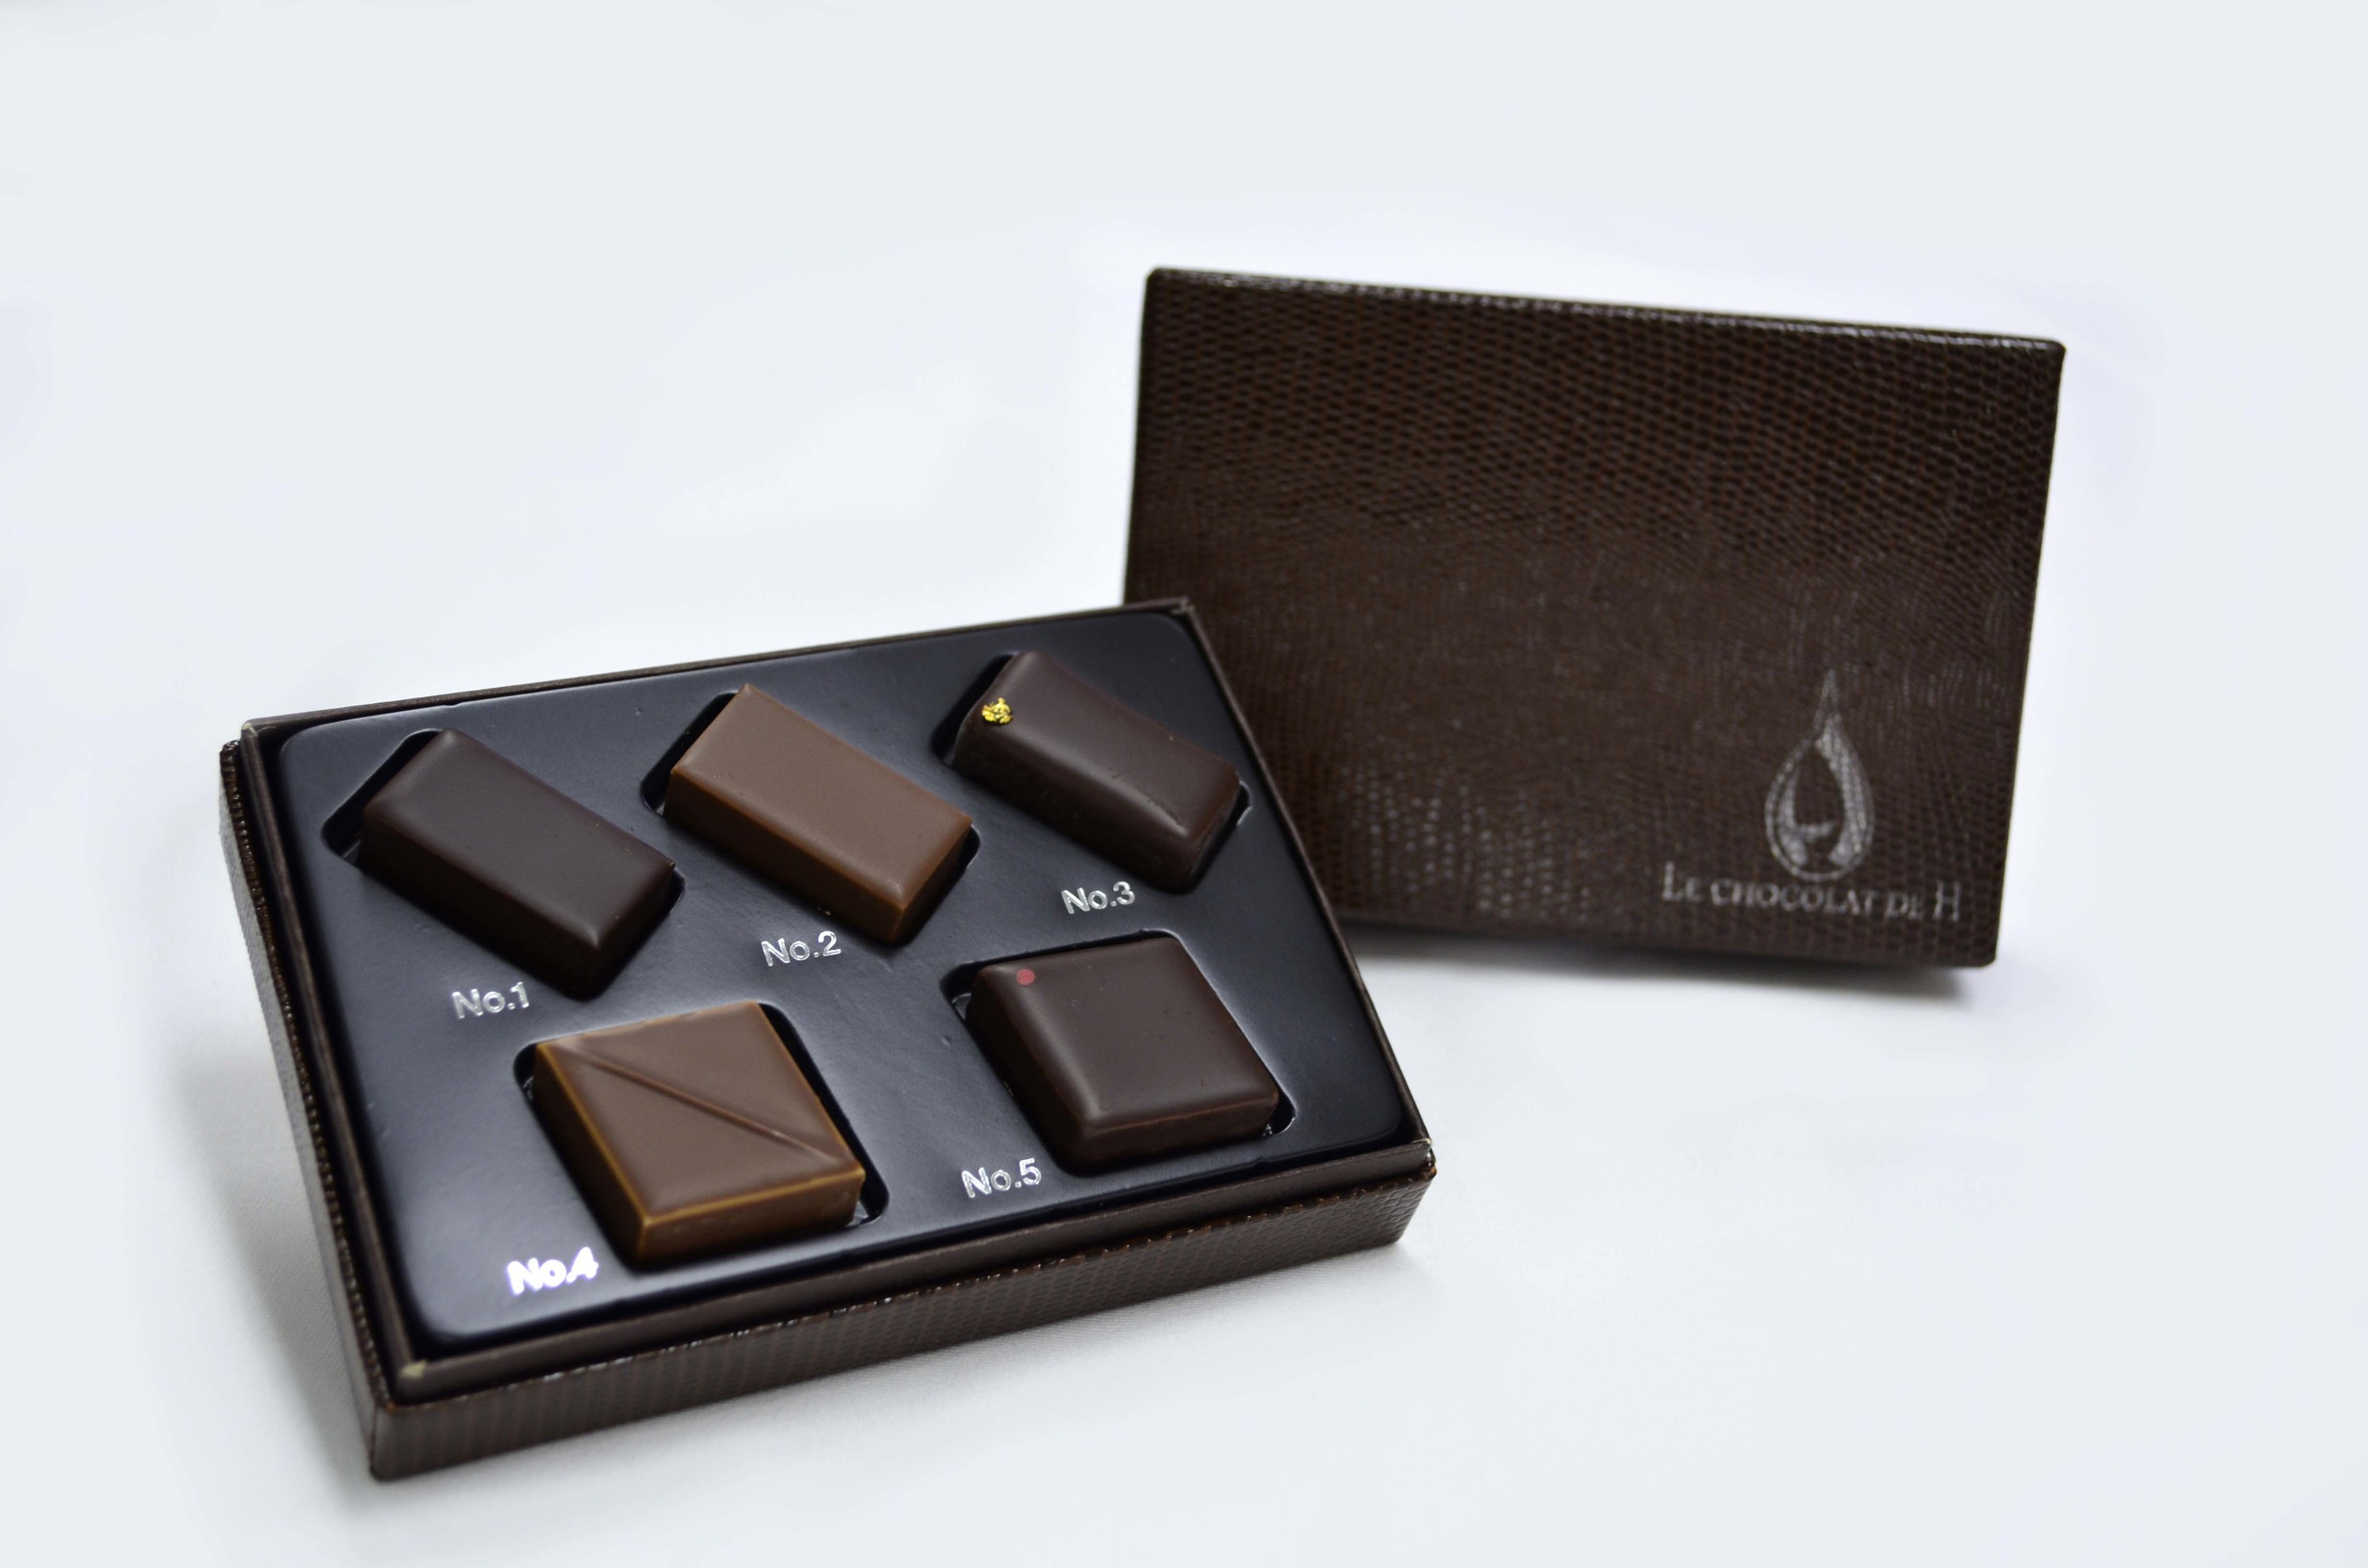 Indulge in the world's best choc